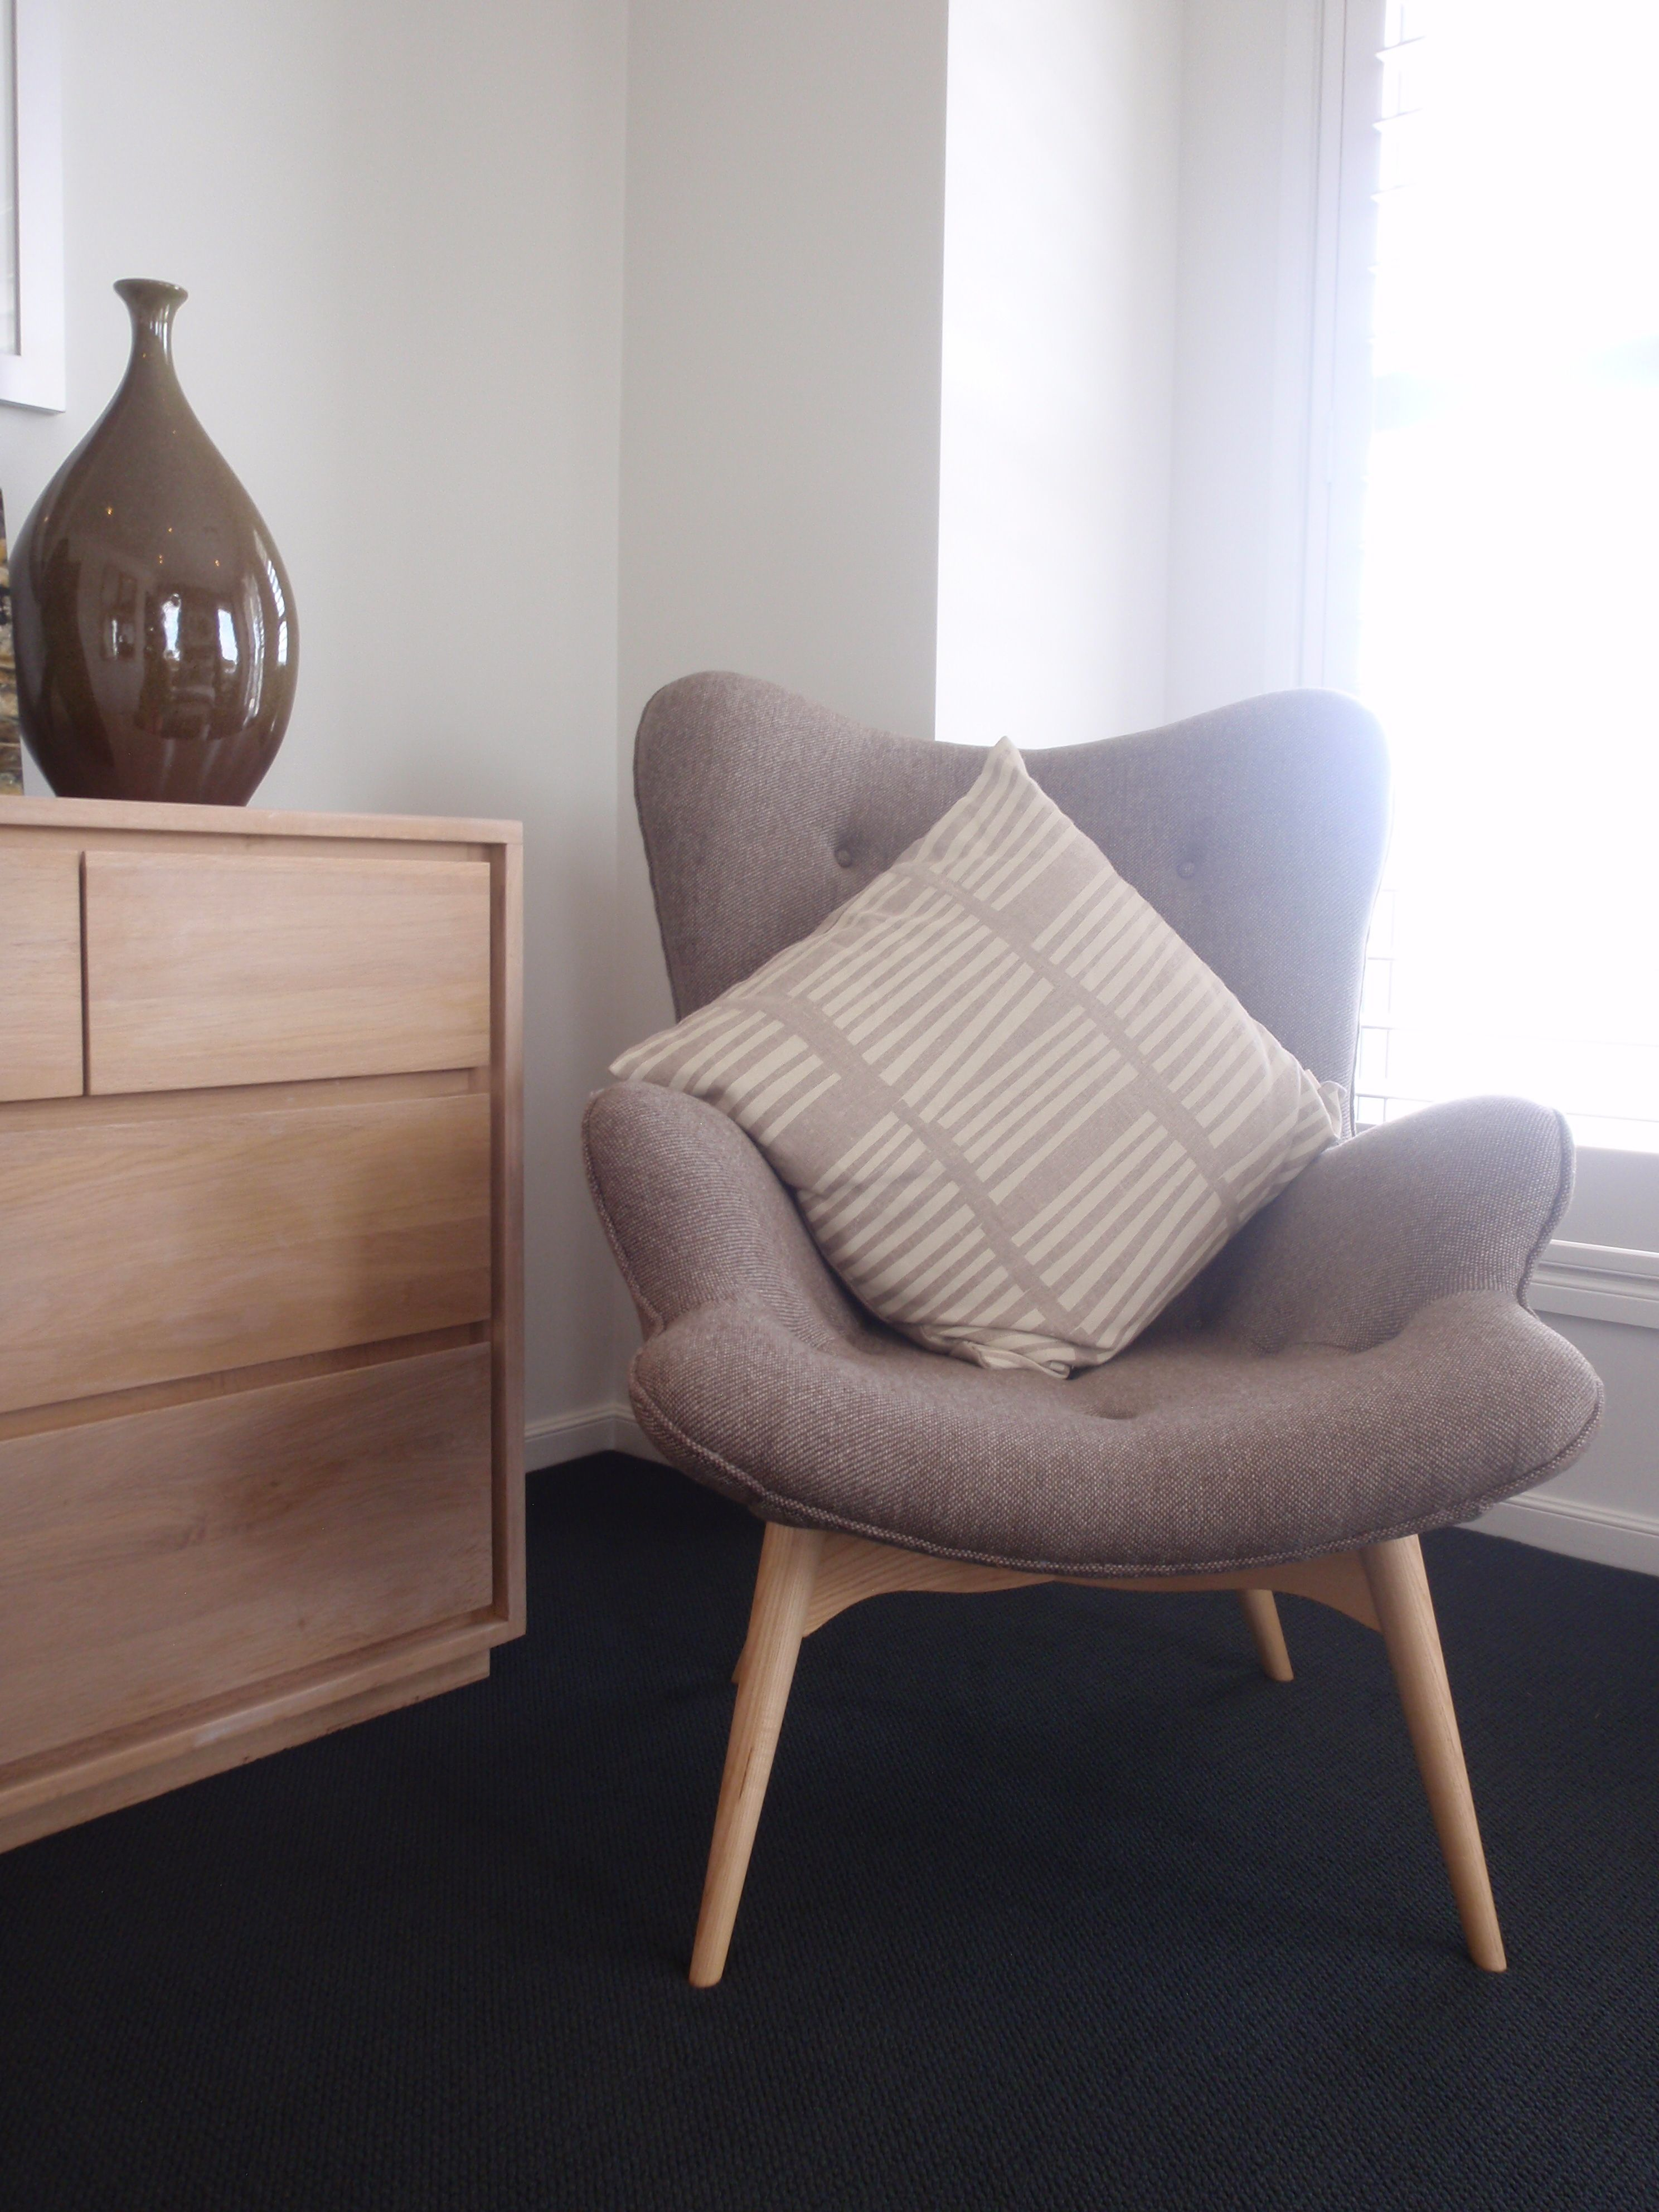 Bedroom Chairs For Small Spaces  For the Home in 10  Pinterest